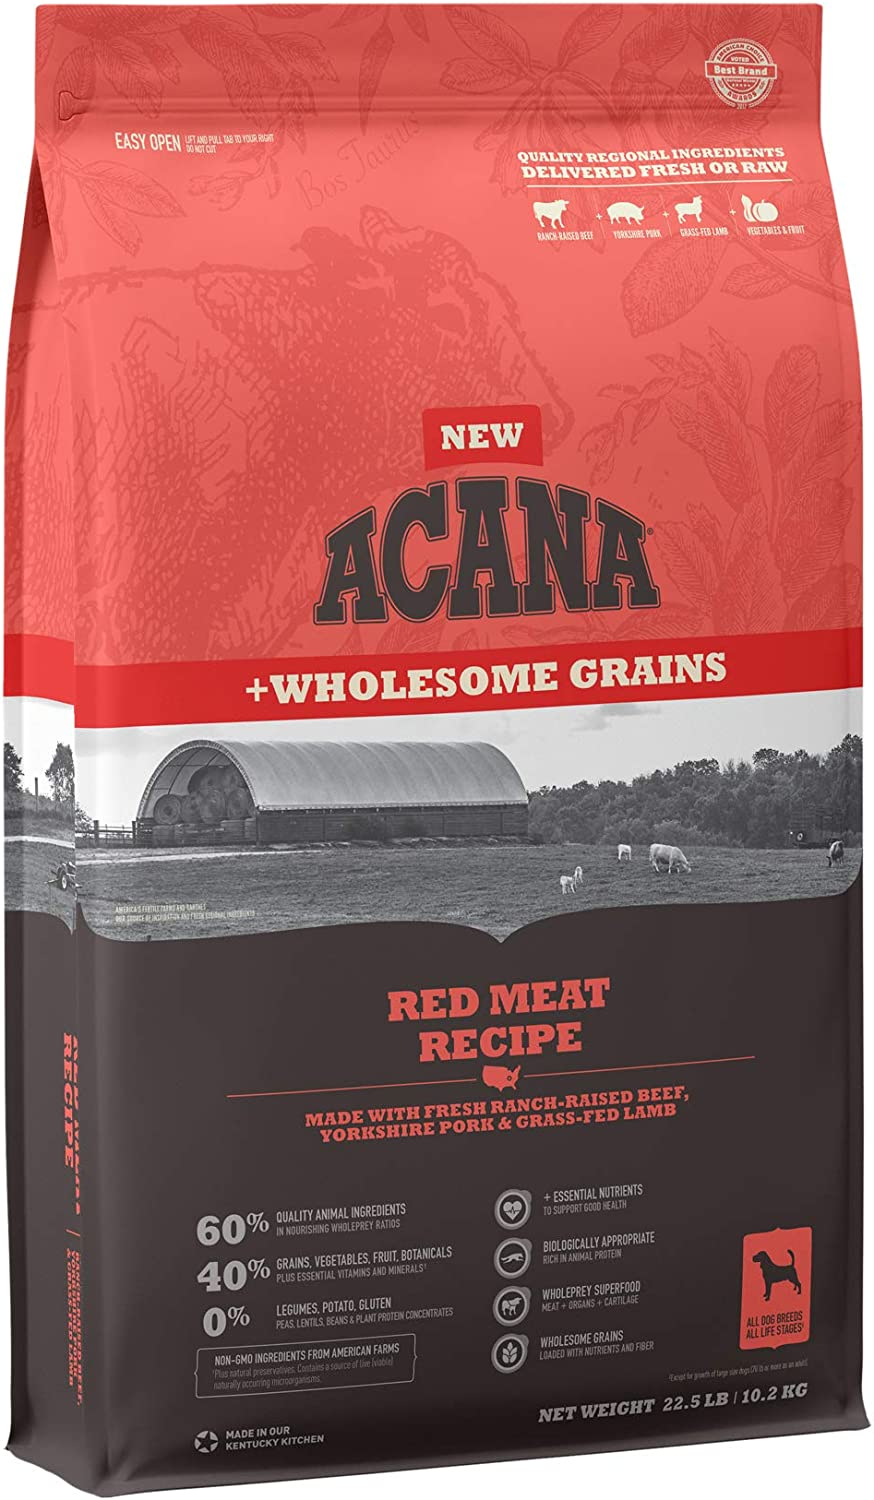 ACANA Wholesome Grains Dry Dog Food, Red Meat and Grains, Beef, Pork, and Lamb, Gluten Free, 22.5lb